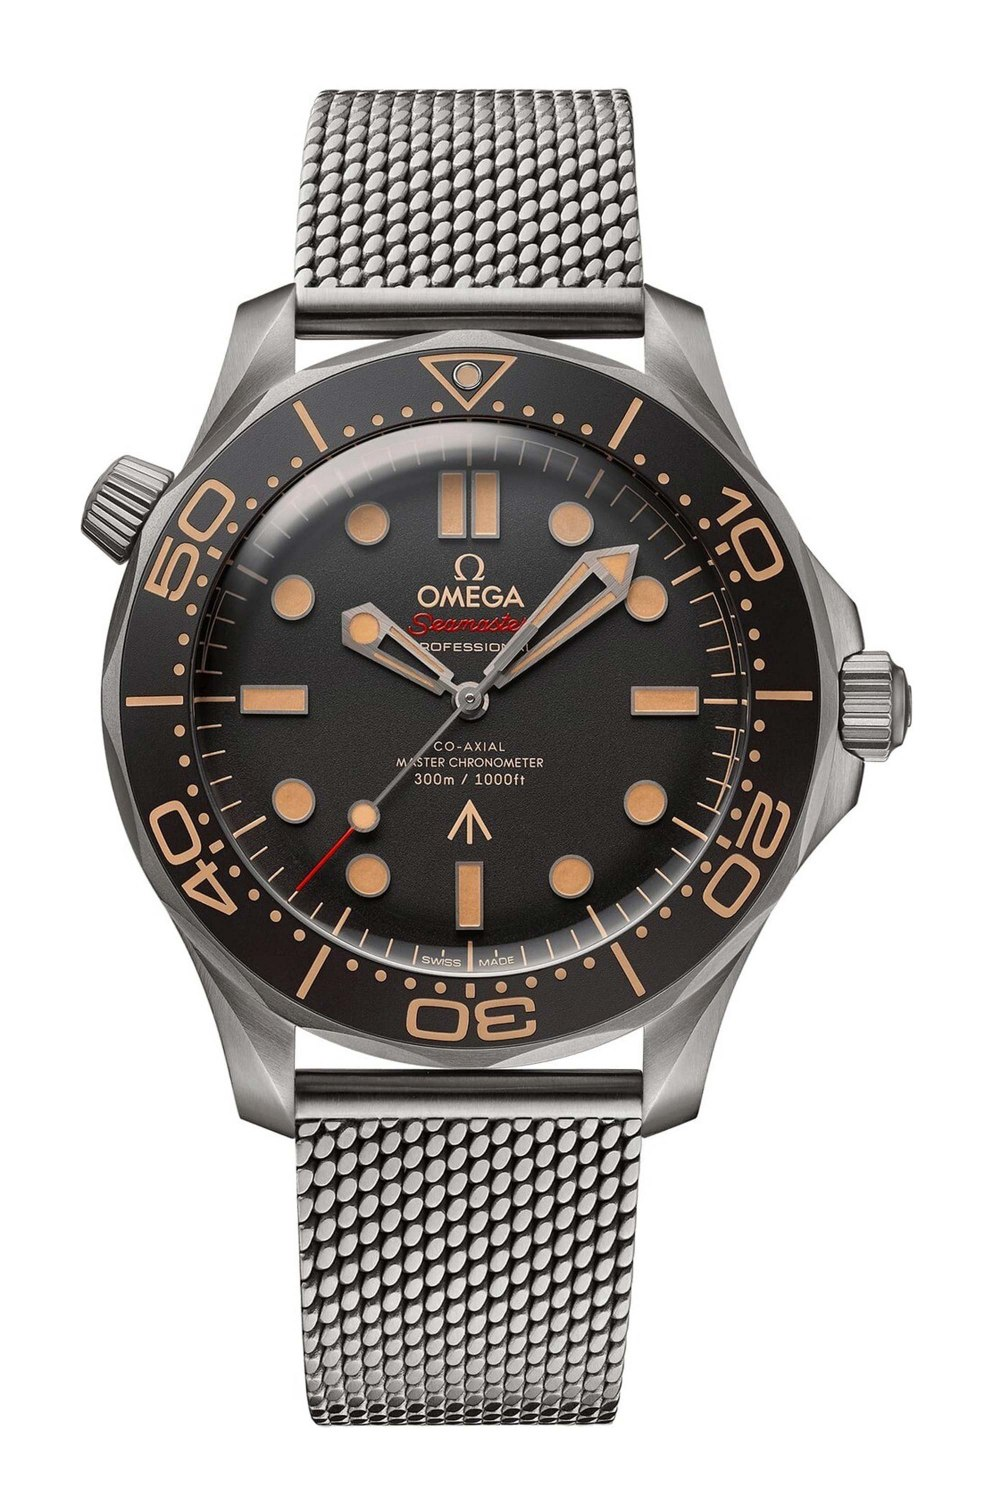 OMEGA Seamaster Diver 300M OMEGA Co-Axial Master Chronometer 42MM 210.90.42.20.01.001